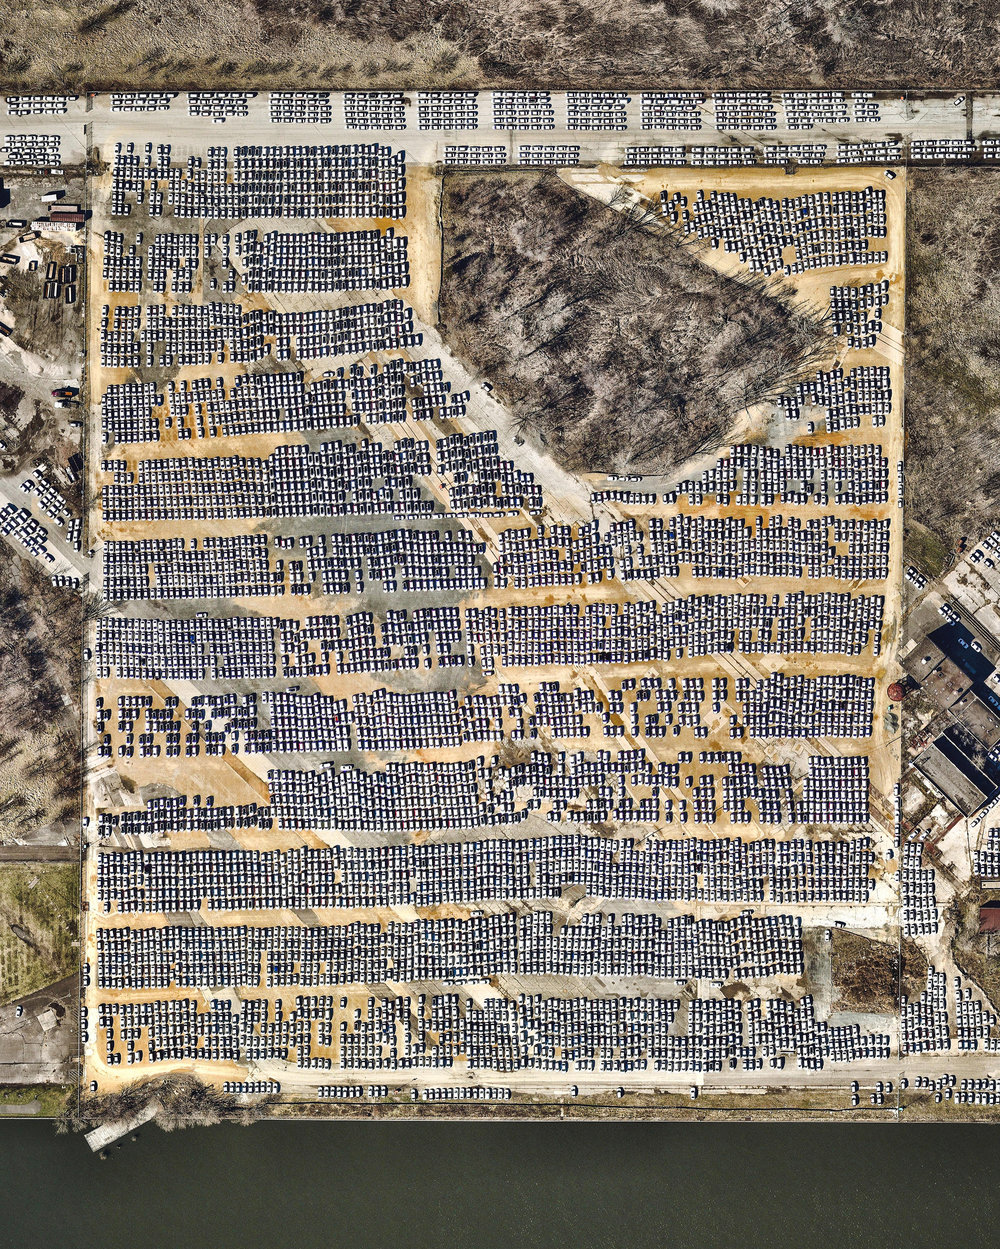 """Thousands of automobiles fill a large lot near the Philadelphia Navy Yard in southern Philadelphia, Pennsylvania. Since 2010, when Hyundai and Kia Motors moved their import businesses to the city, several large lots like this have popped up to accommodate an influx of new vehicles. At least 120,000 vehicles a year have arrived at the Port of Philadelphia since 2011, and more than 155,000 were delivered in 2015.  39°53'25.0""""N, 75°09'20.8""""W  Source imagery: Nearmap"""